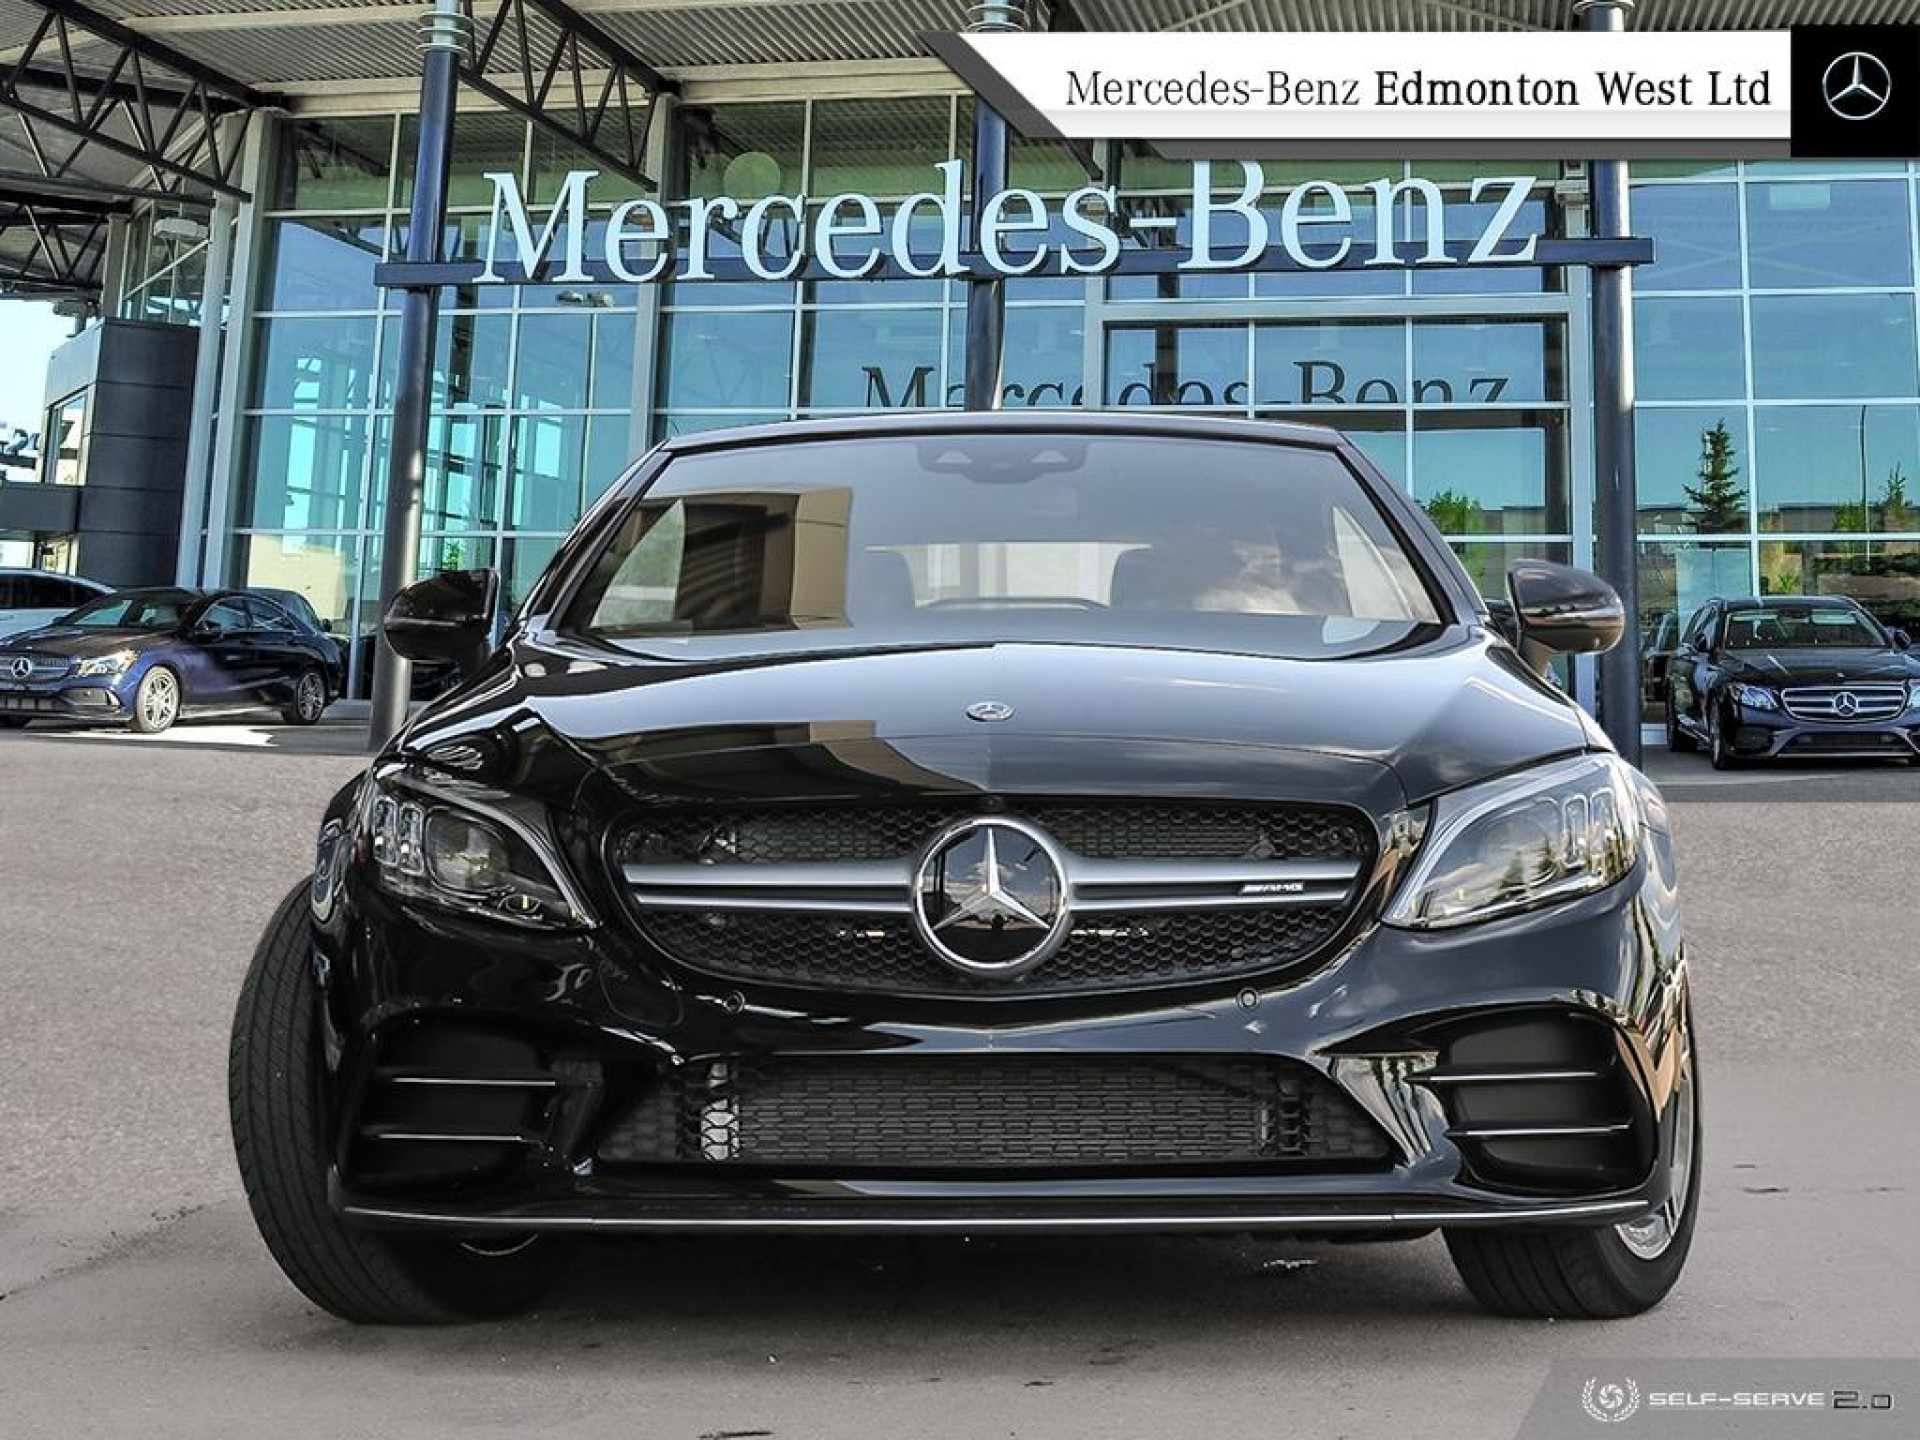 Pre-Owned 2019 Mercedes Benz C-Class AMG C 43 4MATIC Cabriolet